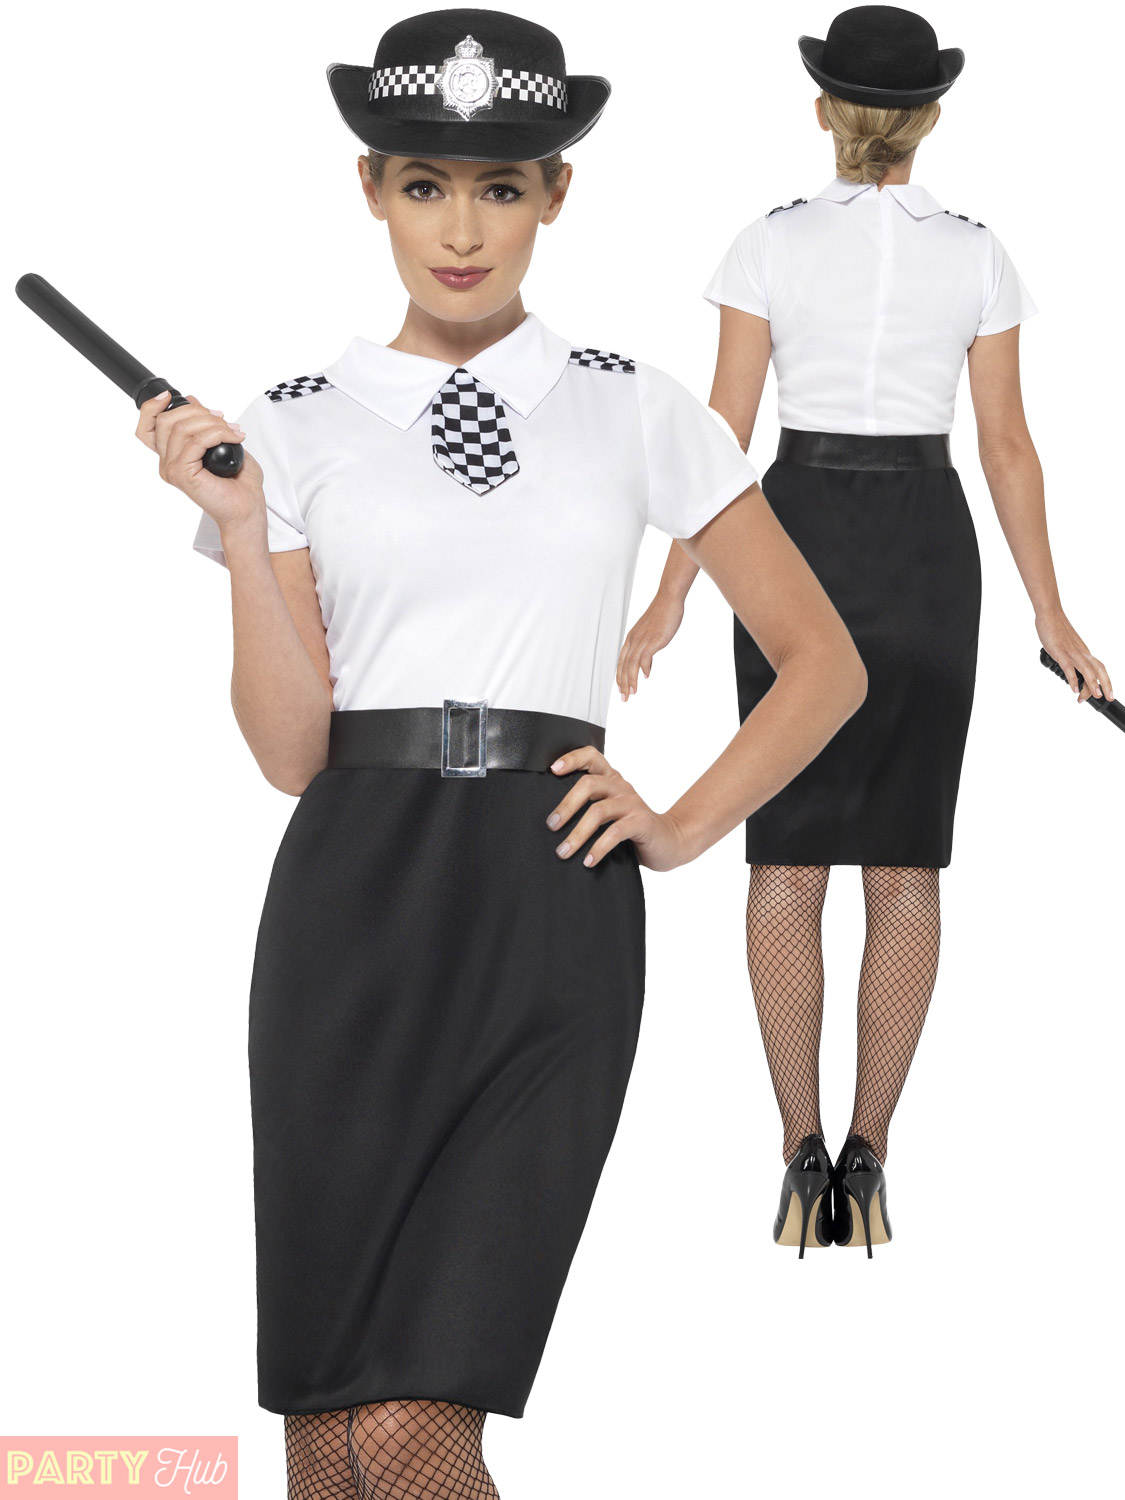 Ladies-Police-Lady-Officer-Costume-Adults-Womans-WPC-  sc 1 st  eBay & Details about Ladies Police Lady Officer Costume Adults Womans WPC Cop Fancy Dress Outfit